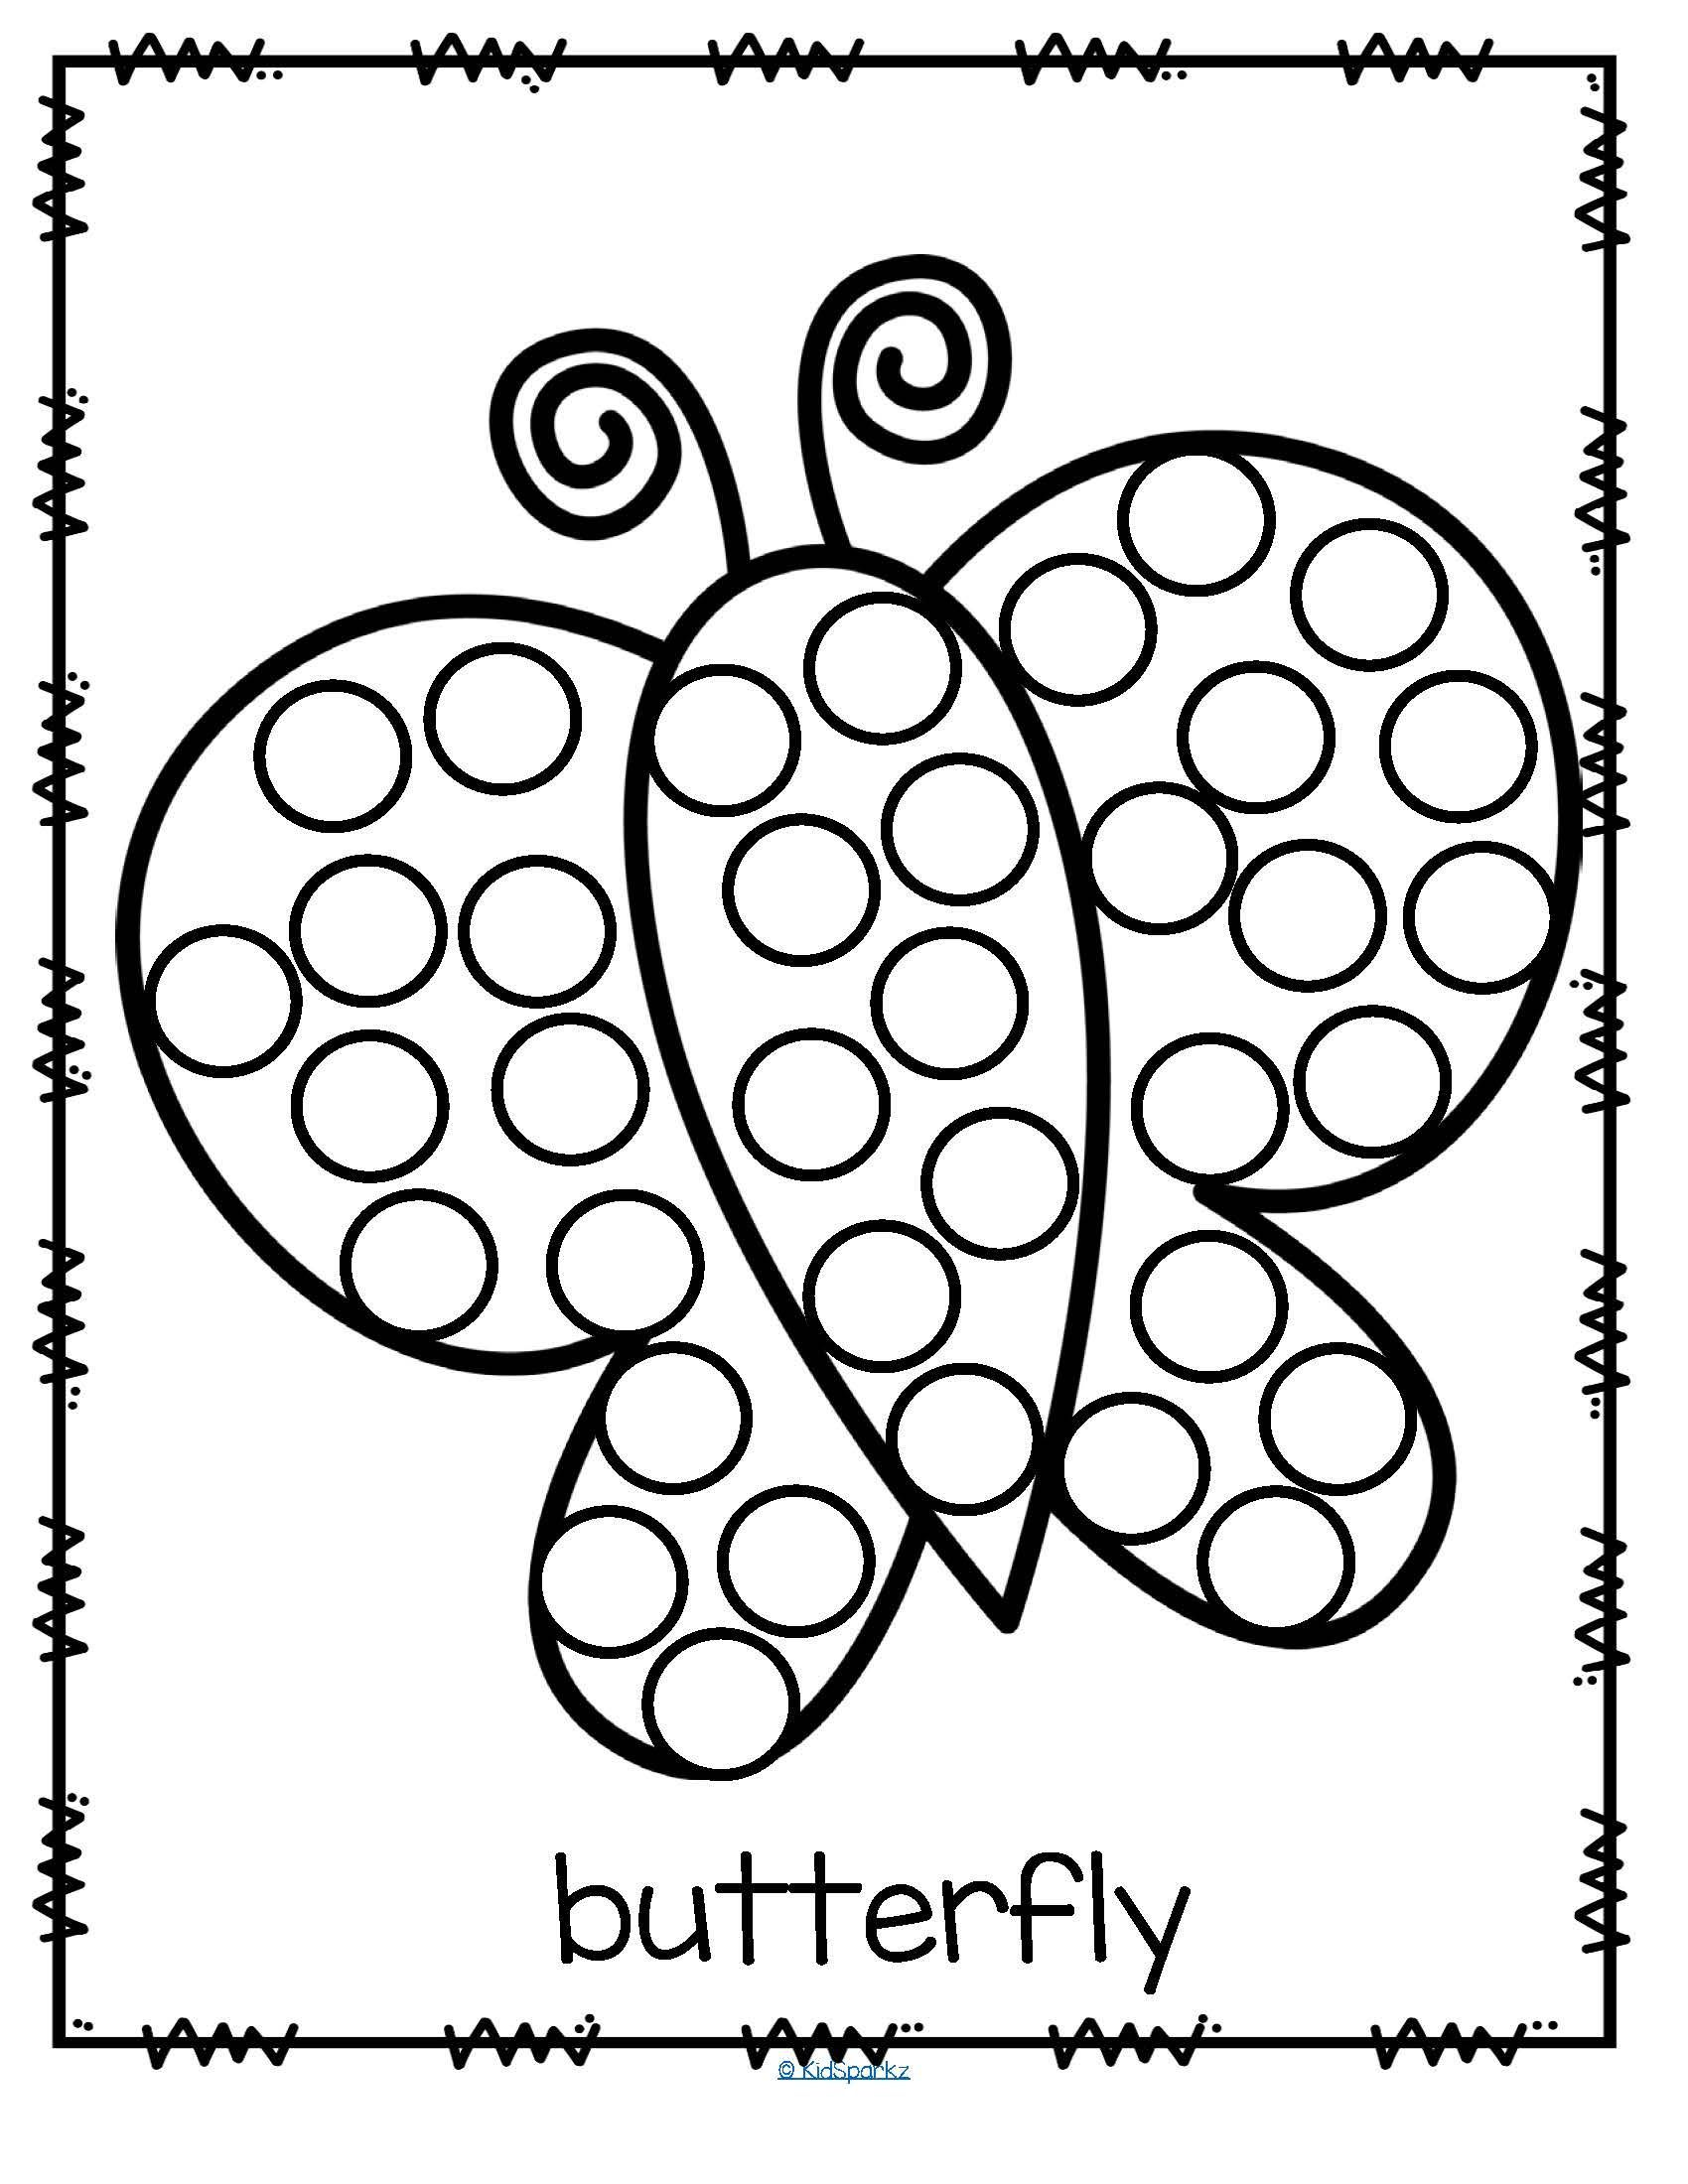 26 Free Printable Dot Marker Templates Of Butterfly Do A Dot Art Coloring Page 2ans Pinterest